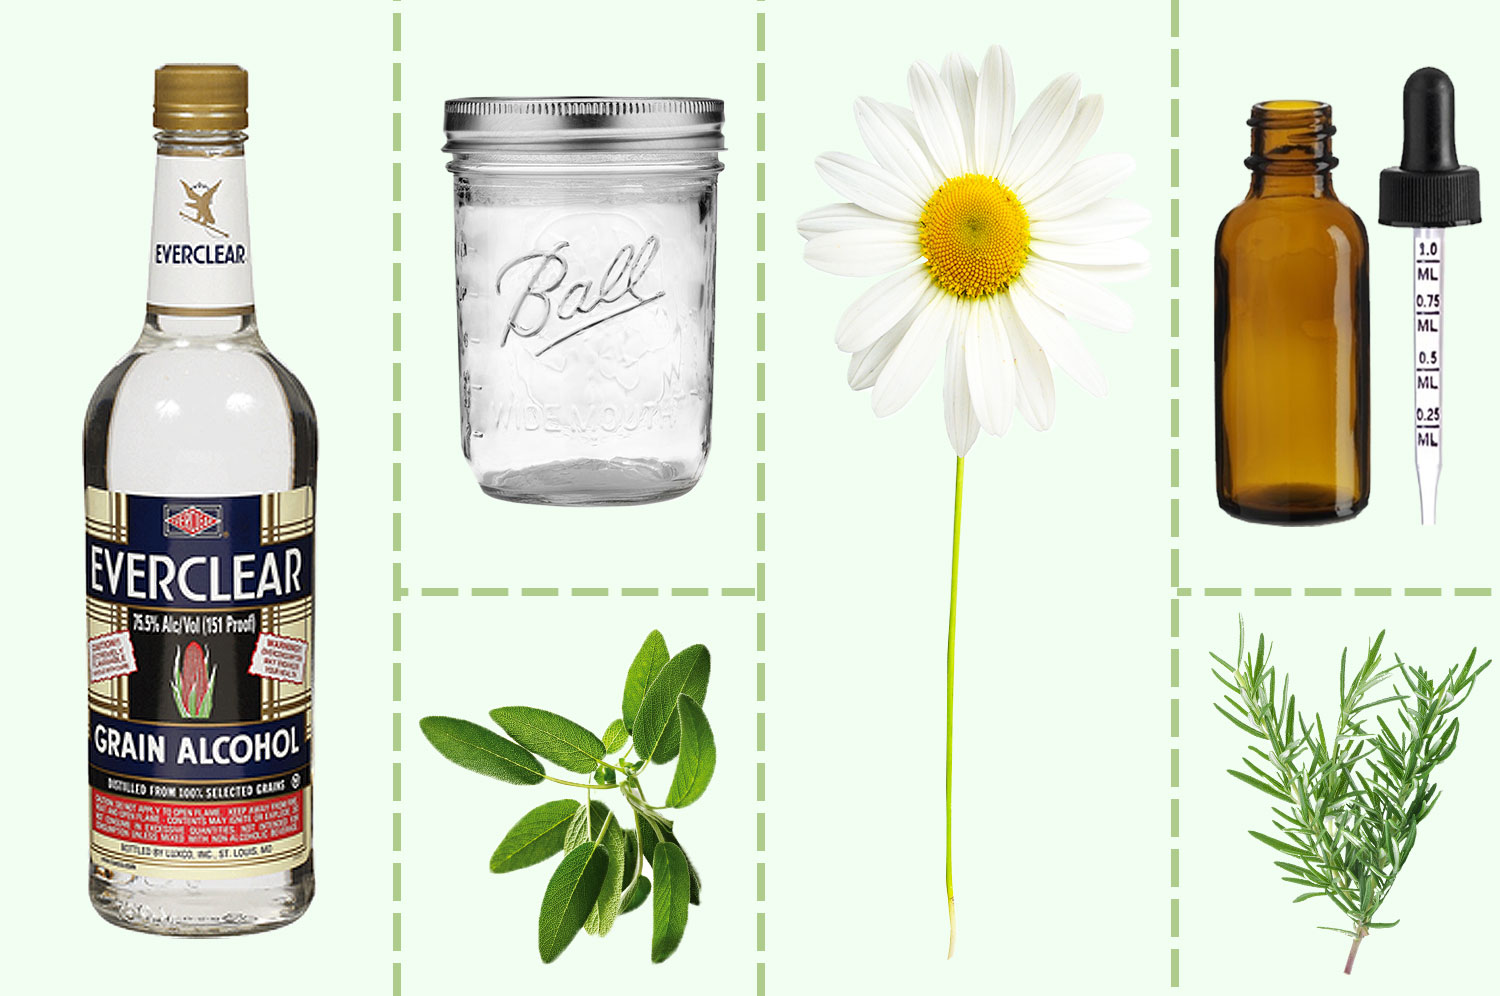 On a light green background, images of a bottle of Everclear vodka, a Ball jar, amber bottle with dropper, and some botanicals